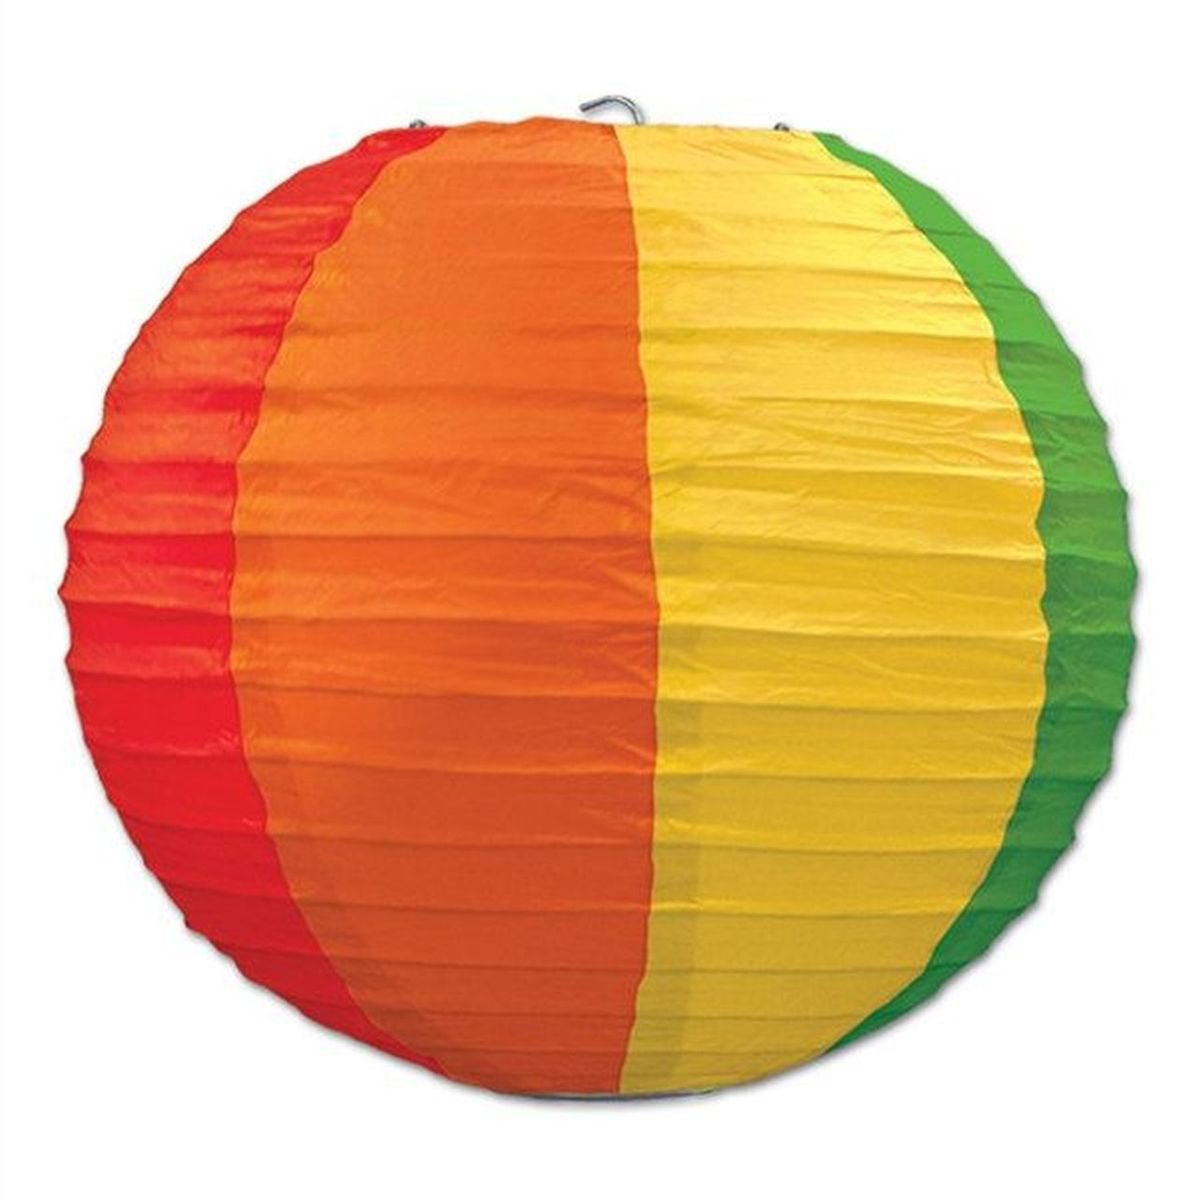 14-Inch Round-shape Patterned Paper Lanterns